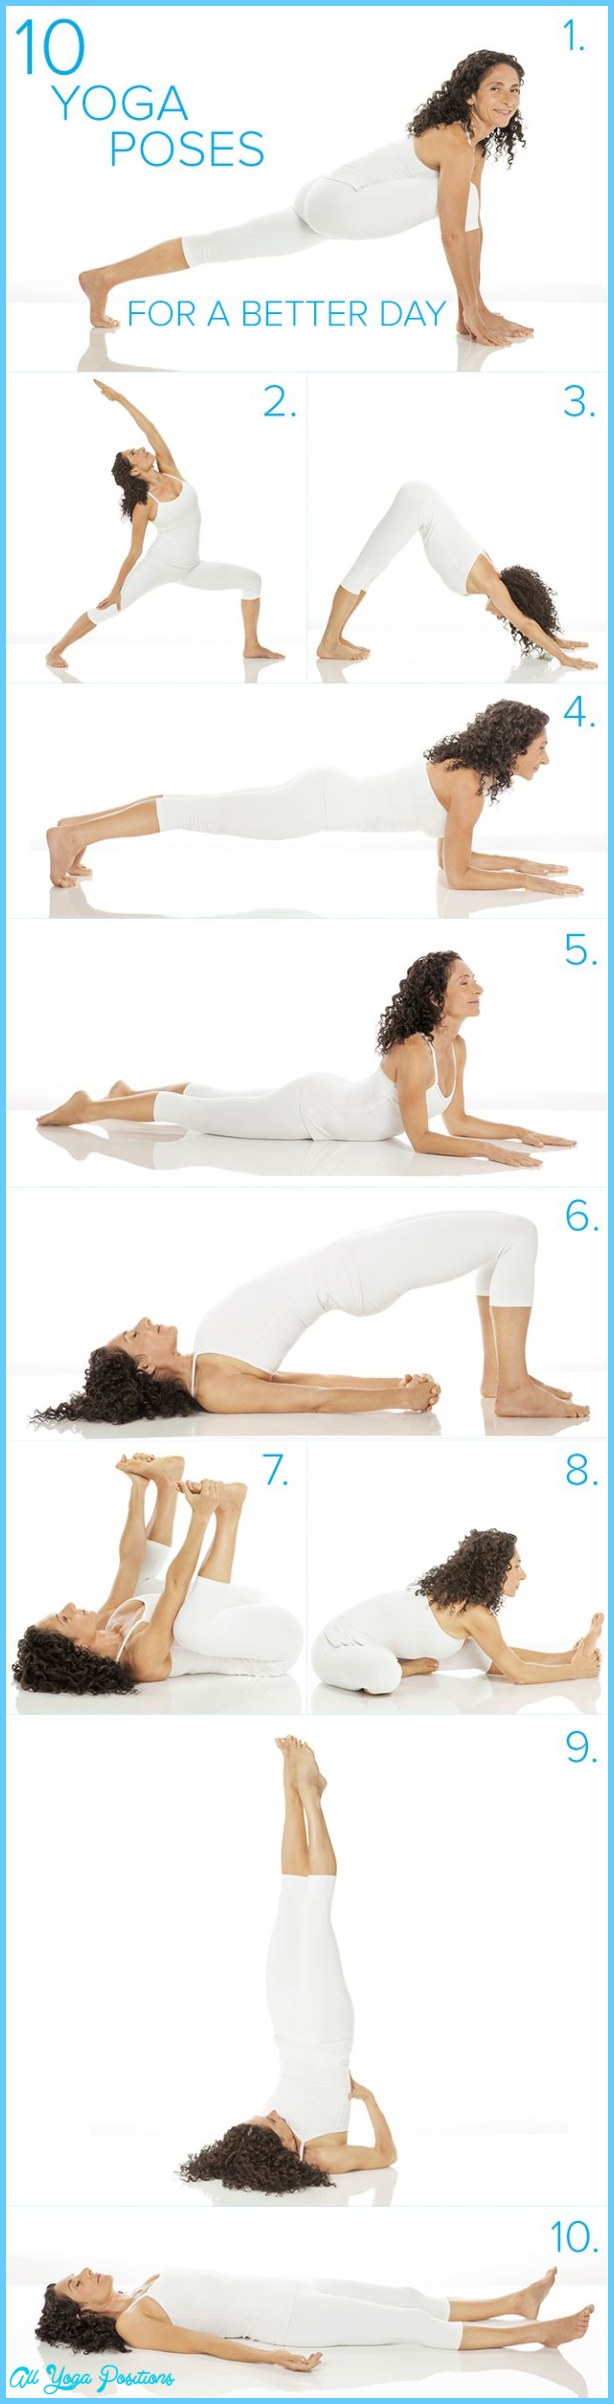 How To Do Yoga Poses For Beginners_17.jpg